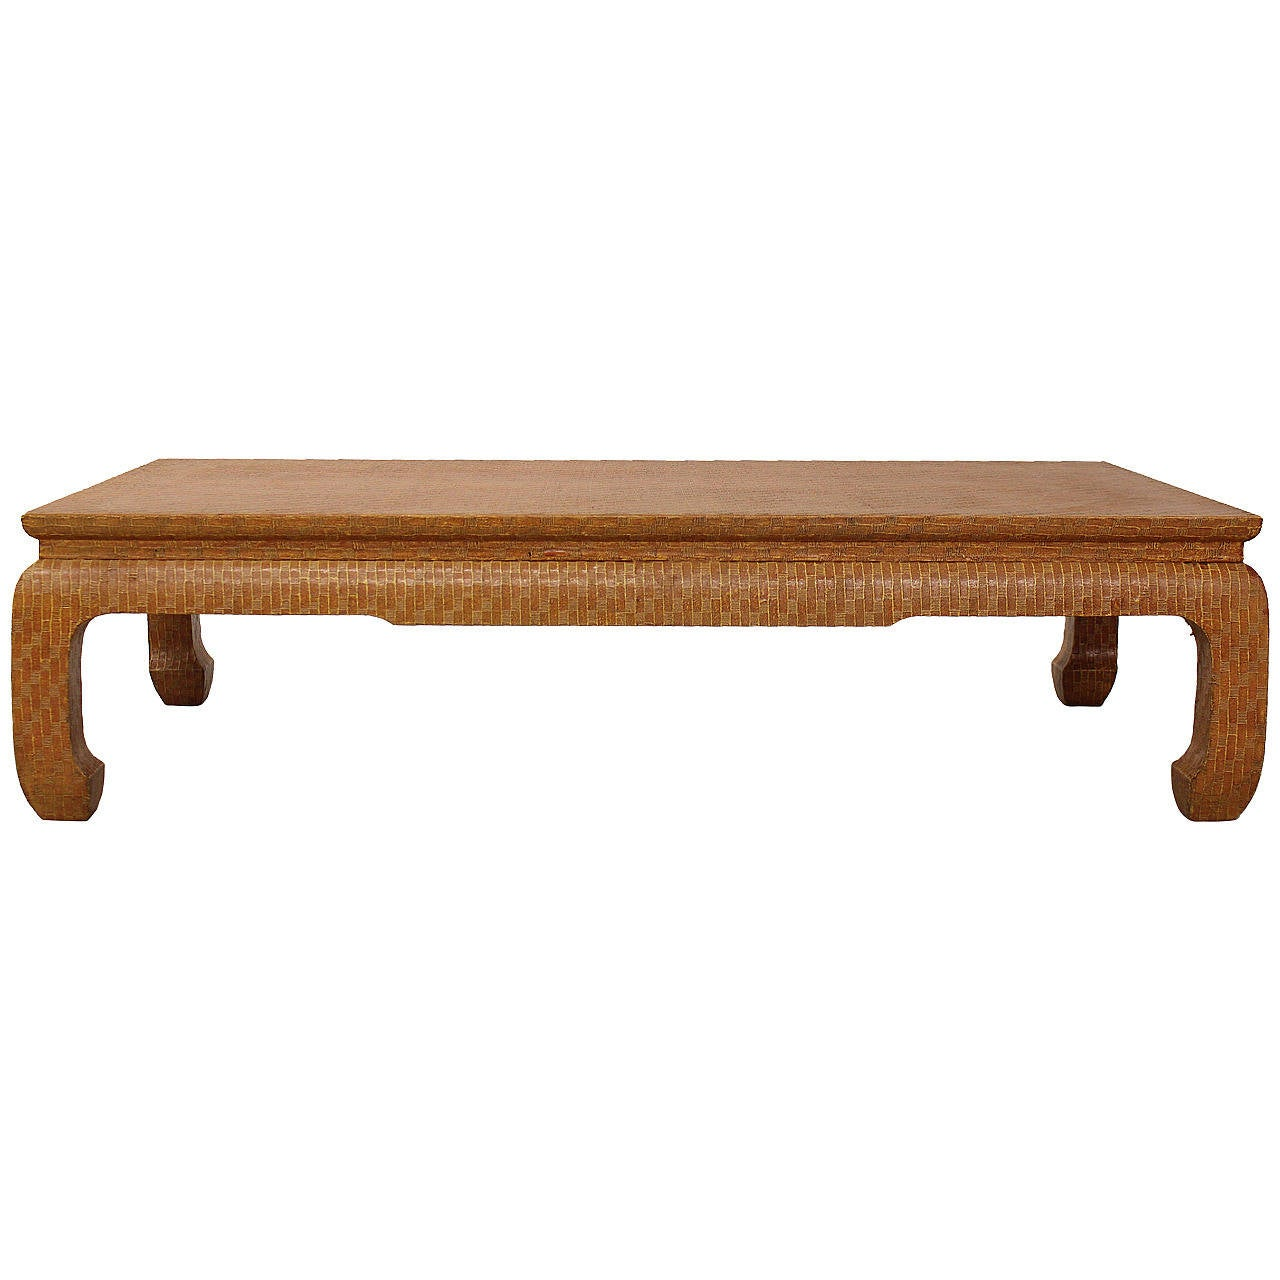 style grasscloth coffee table by baker furniture at 1stdibs